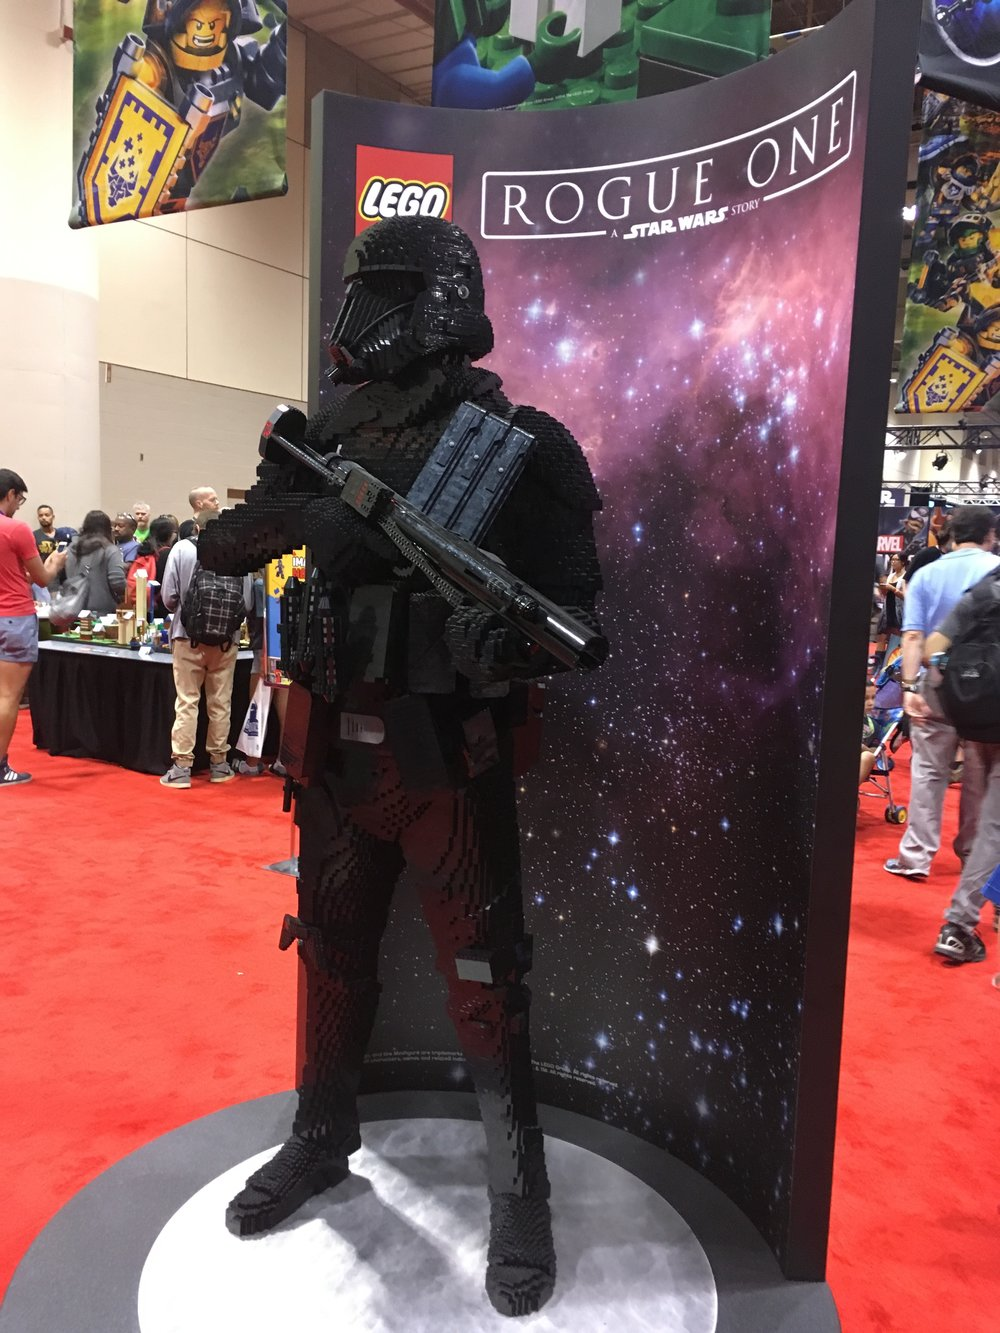 LEGO Imperial Death Trooper!